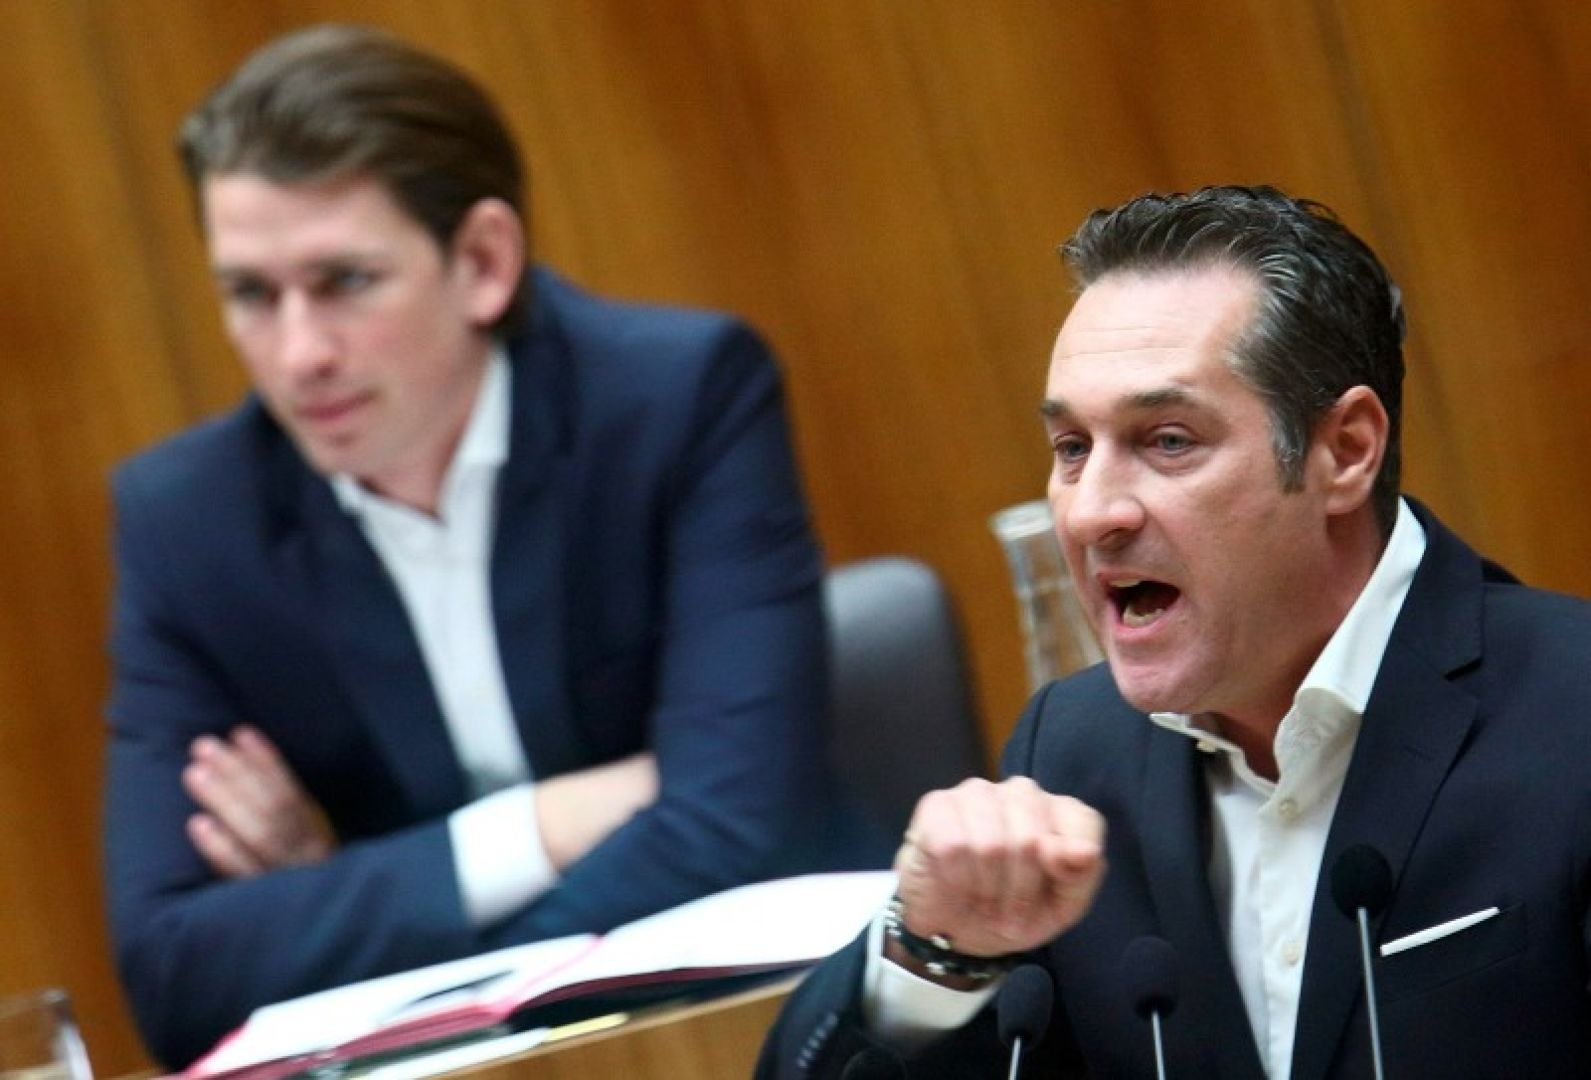 Austrian conservative leader Sebastian Kurz will hold coalition talks with the Freedom Party (FPO)